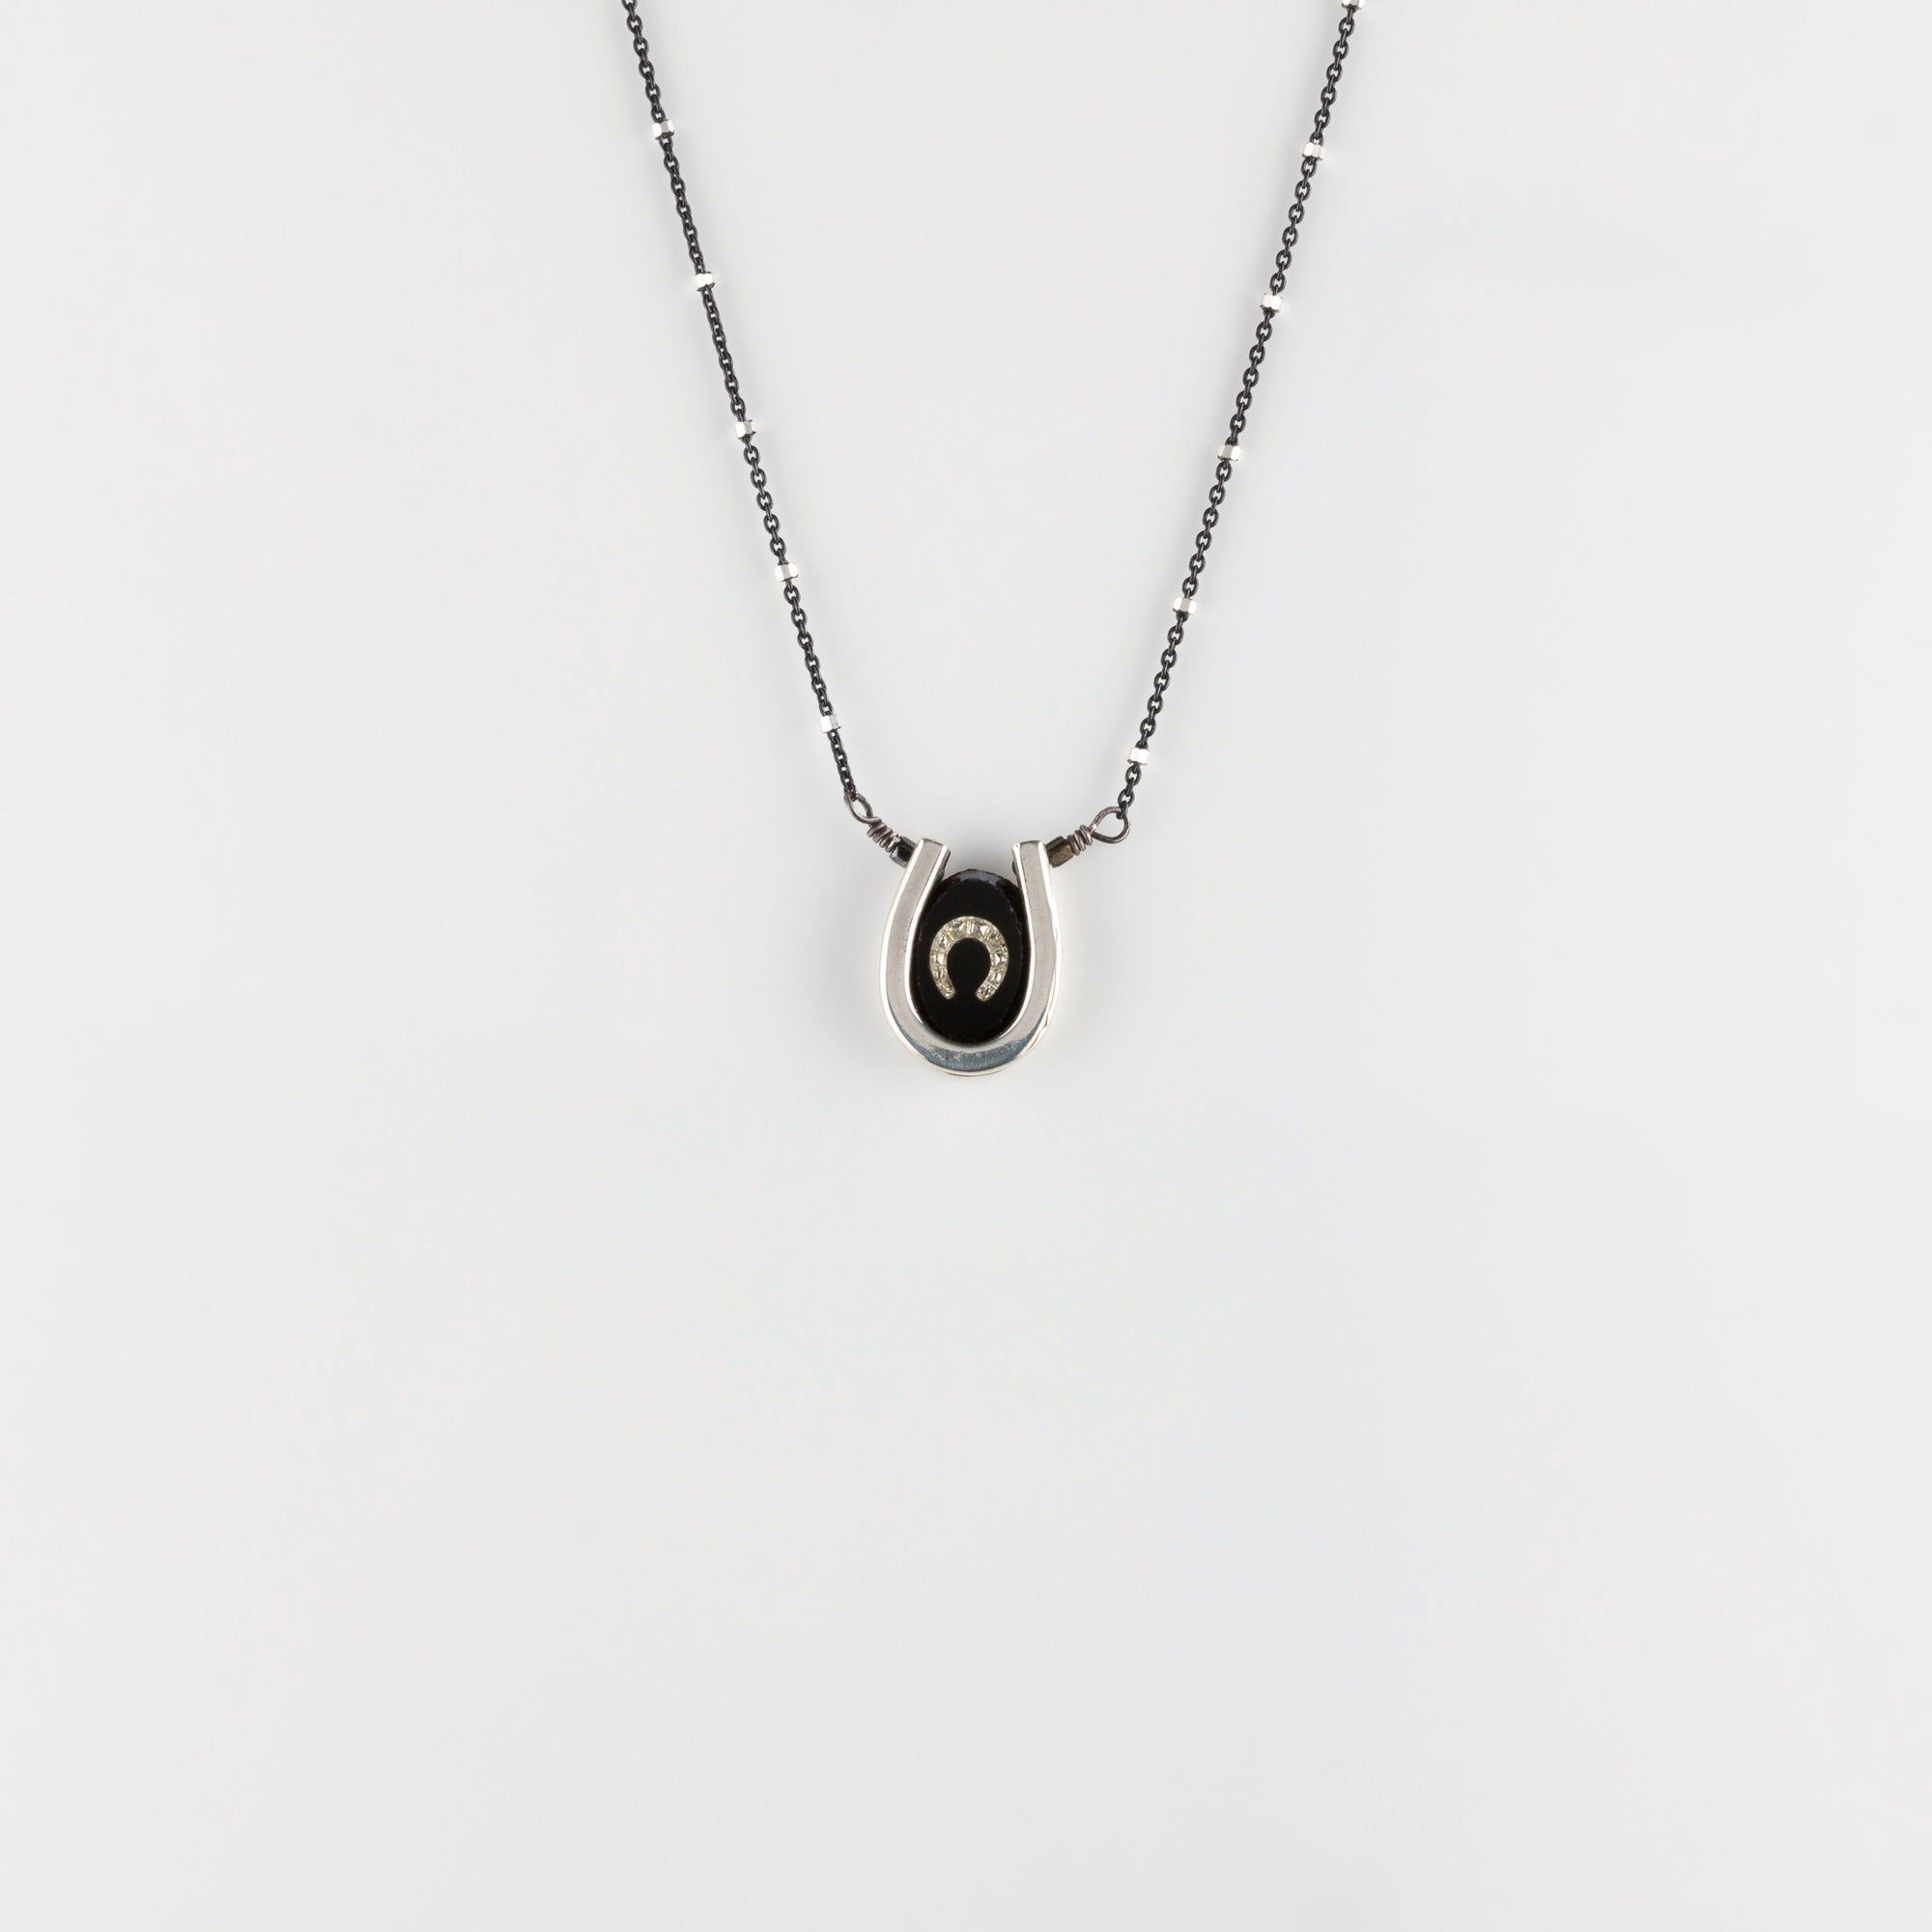 DOUBLE LUCK // SILVER NECKLACE // BLACK & WHITE